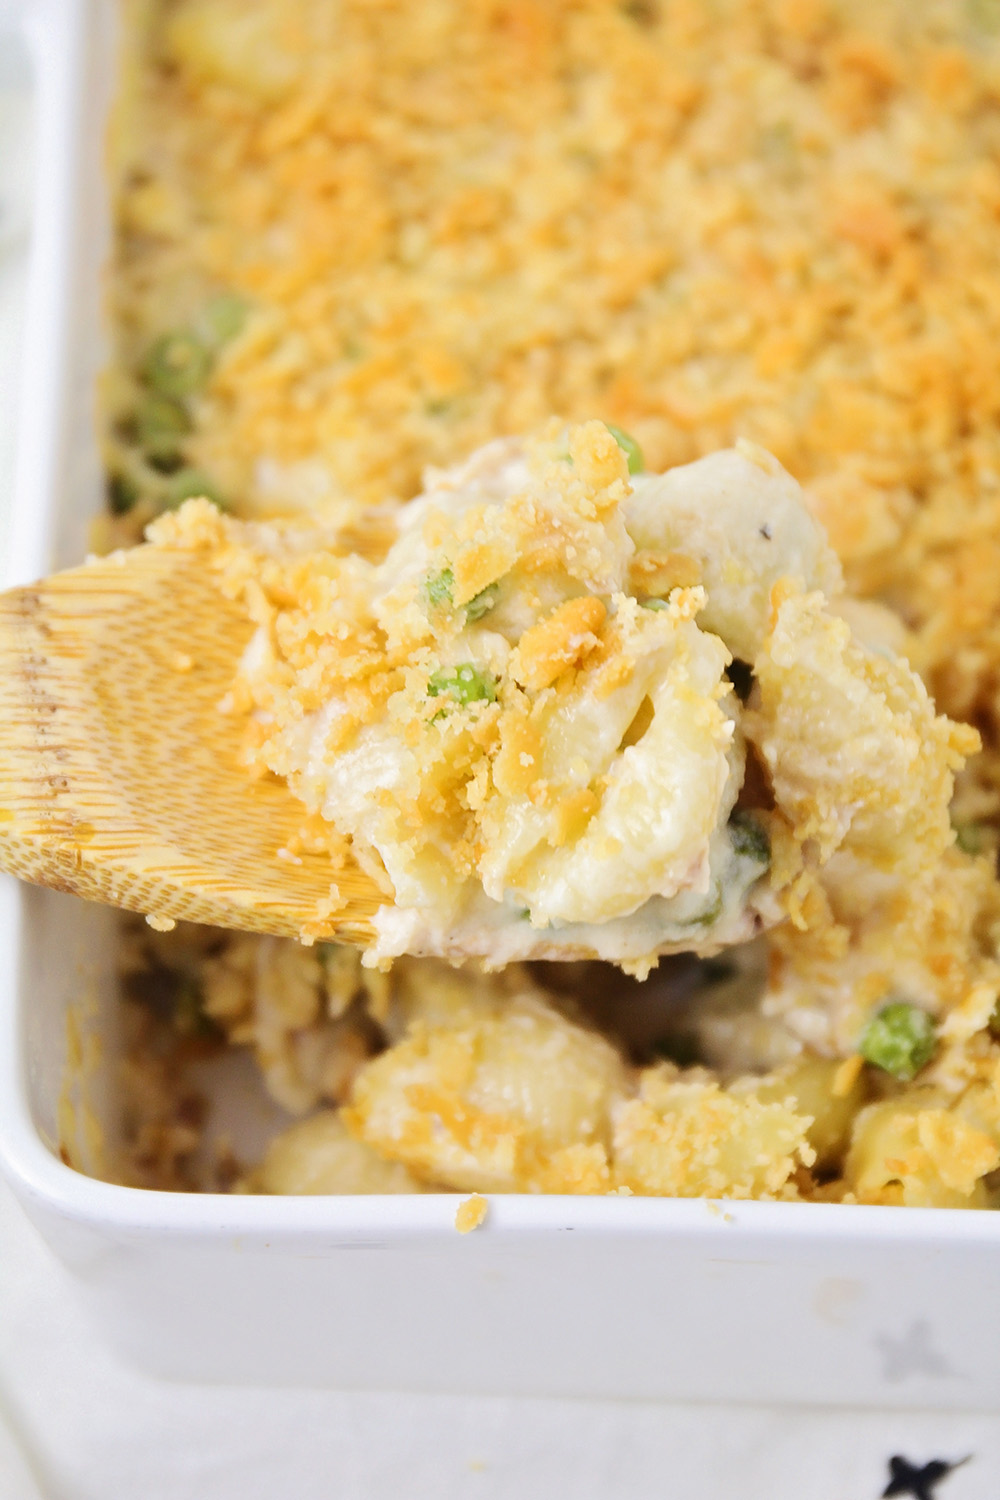 This creamy comfort food tuna casserole is made from scratch, and totally delicious!